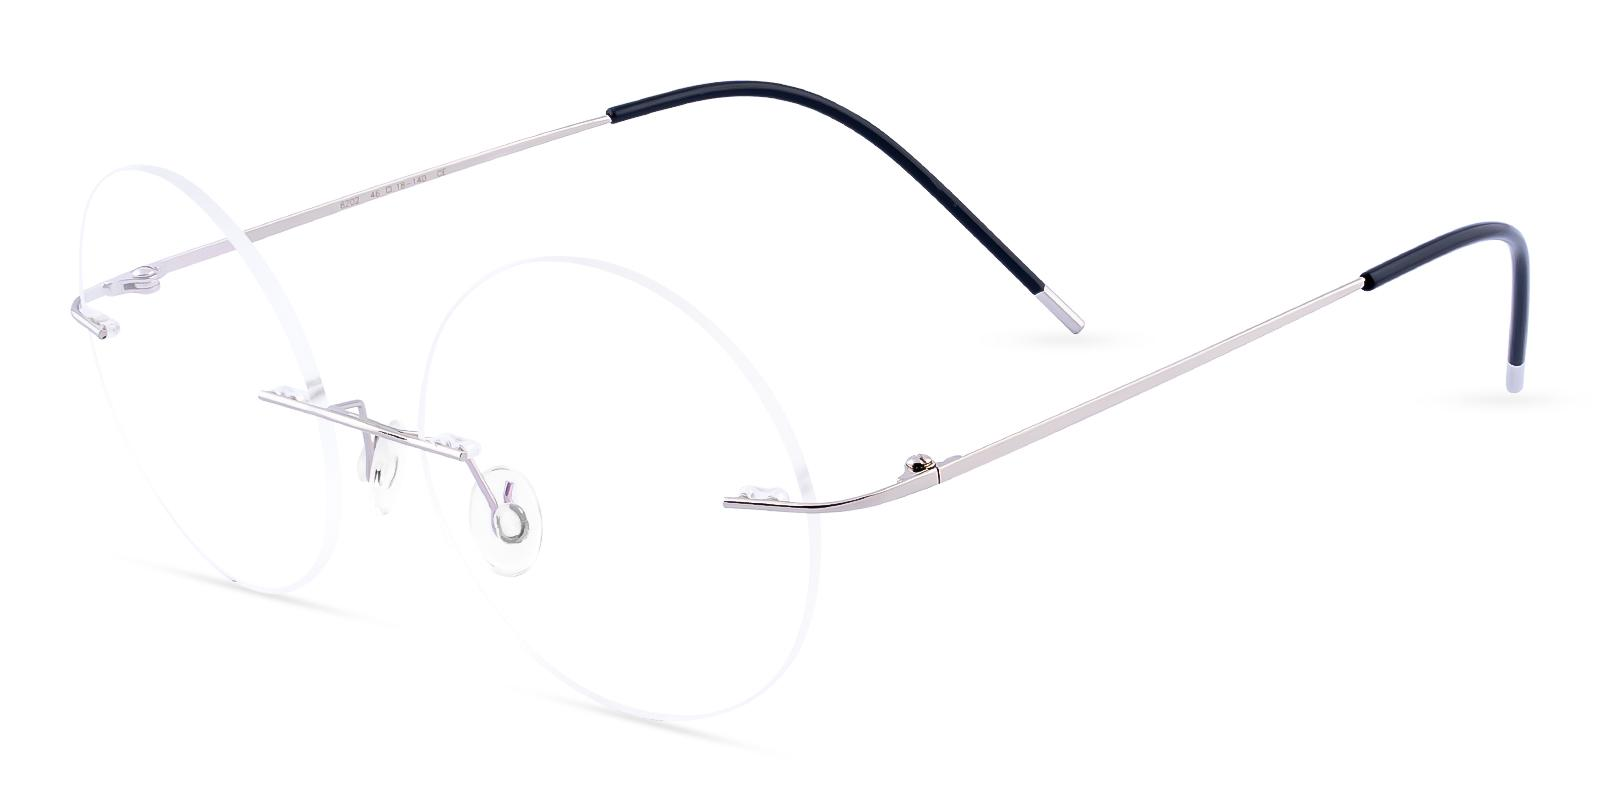 Hiawatha Silver Metal Eyeglasses , NosePads Frames from ABBE Glasses